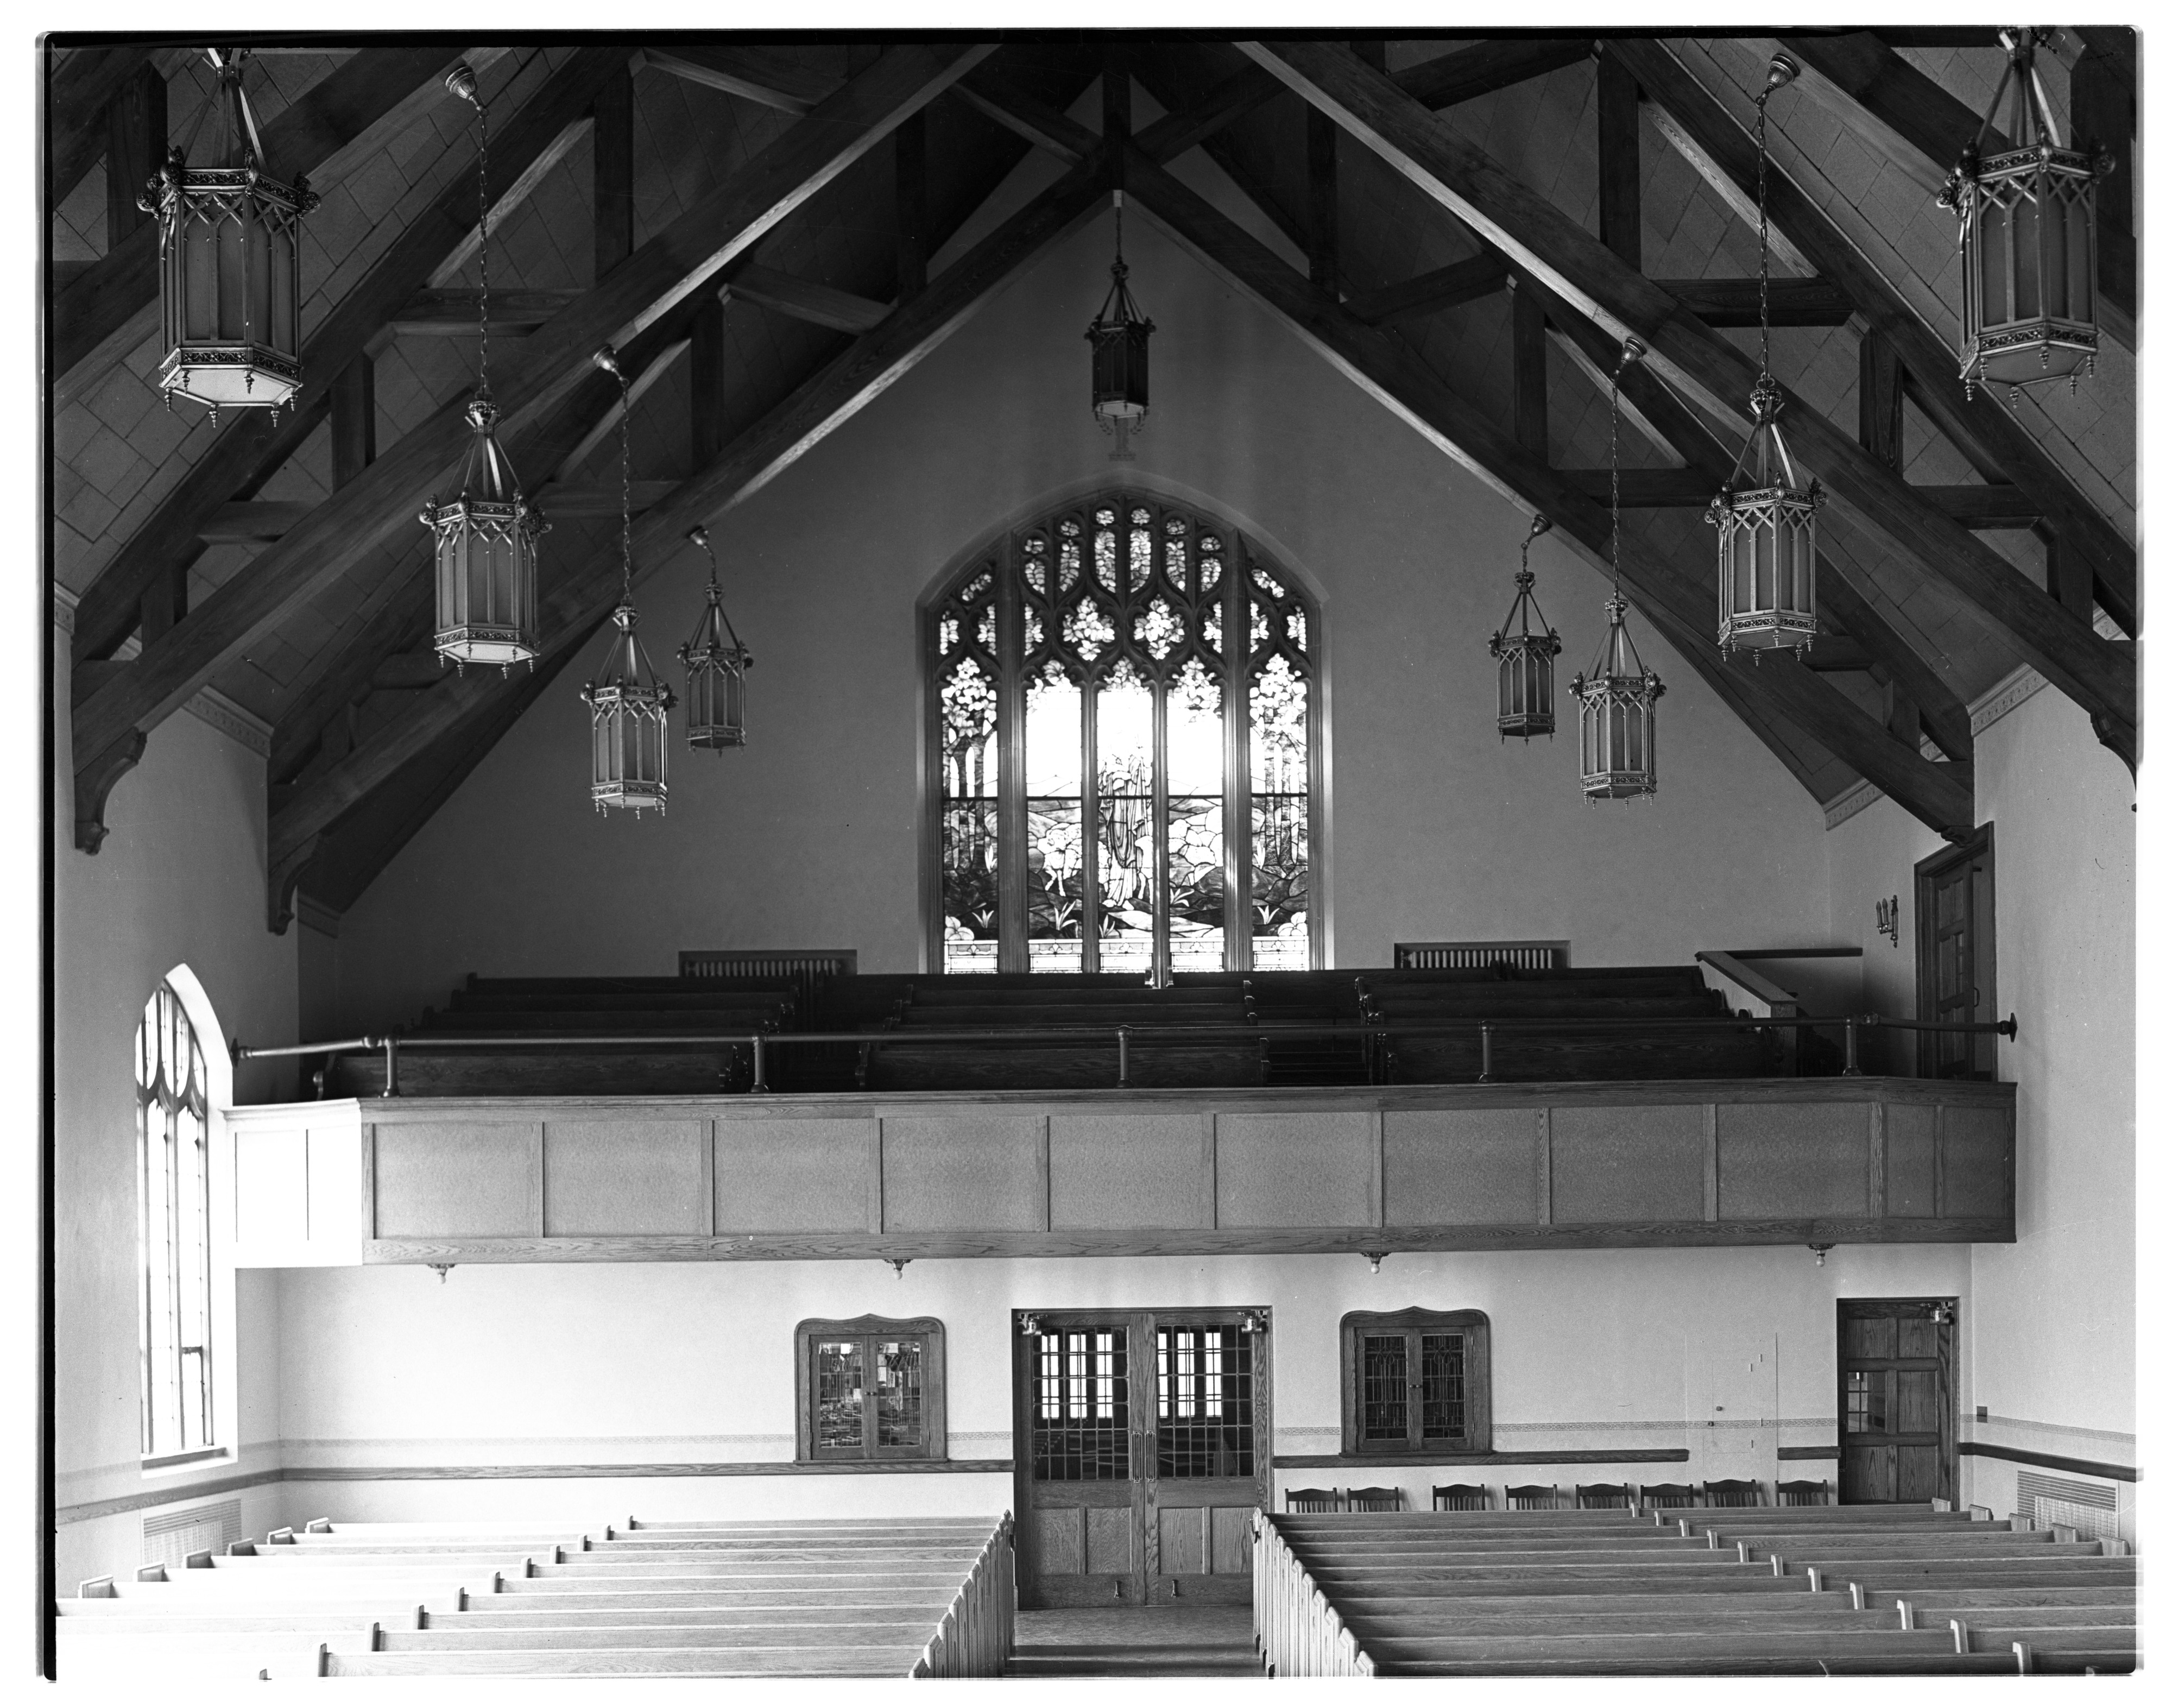 St. Paul Lutheran Church image